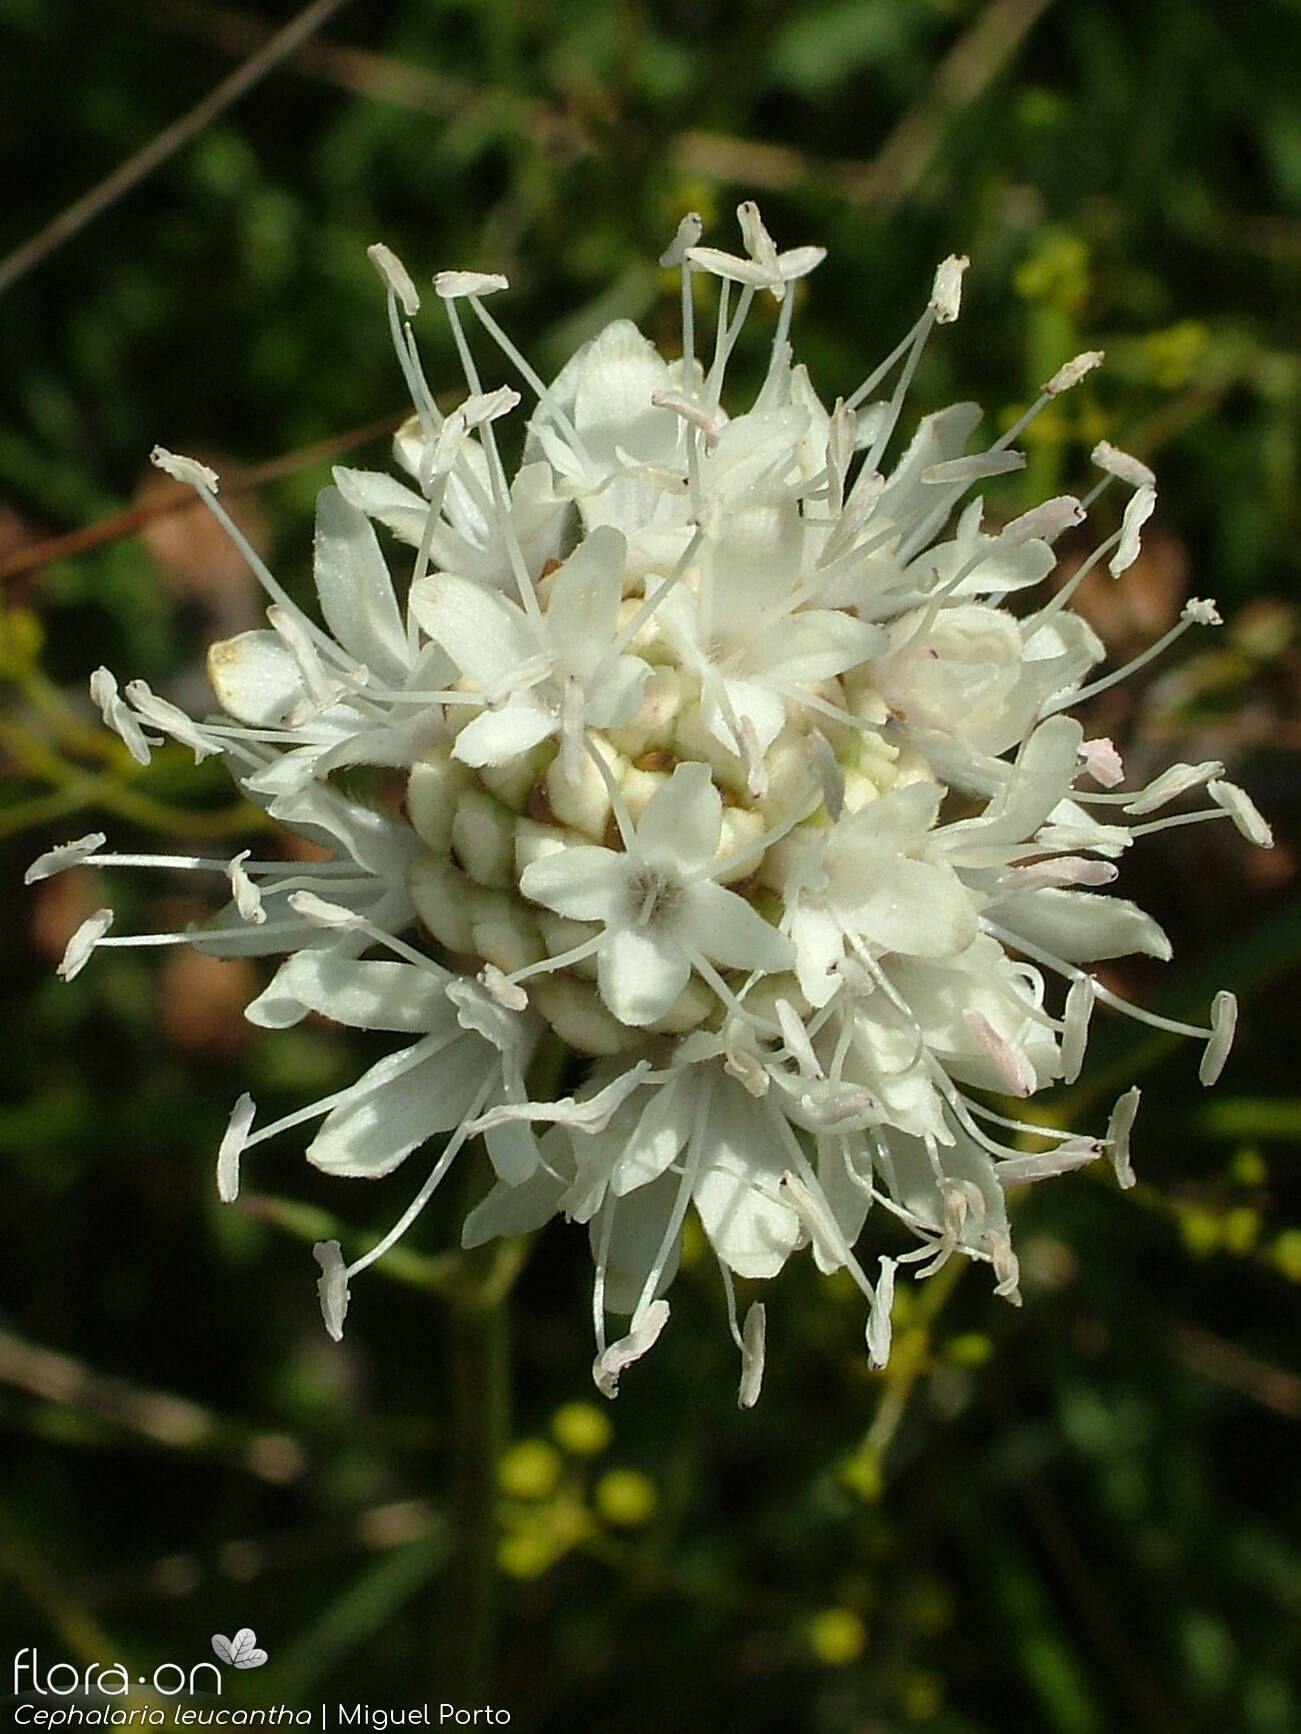 Cephalaria leucantha - Flor (close-up) | Miguel Porto; CC BY-NC 4.0